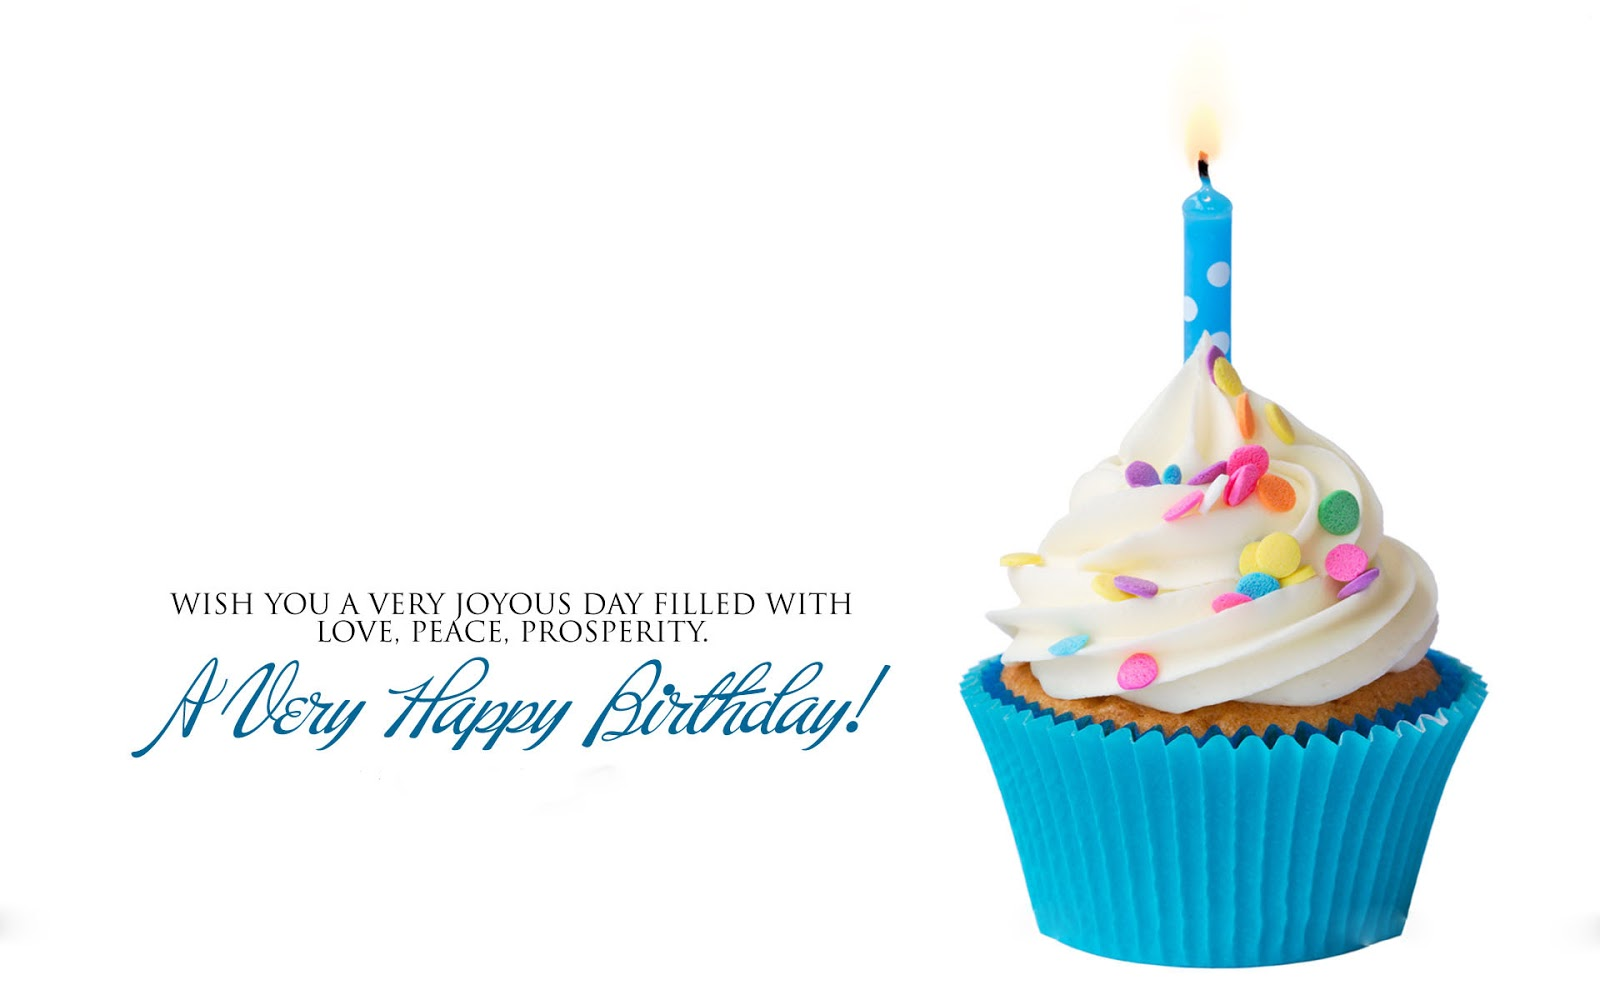 happy birthday celebration messages ; A-Very-Happy-Birthday-Wishes-Wallpaper